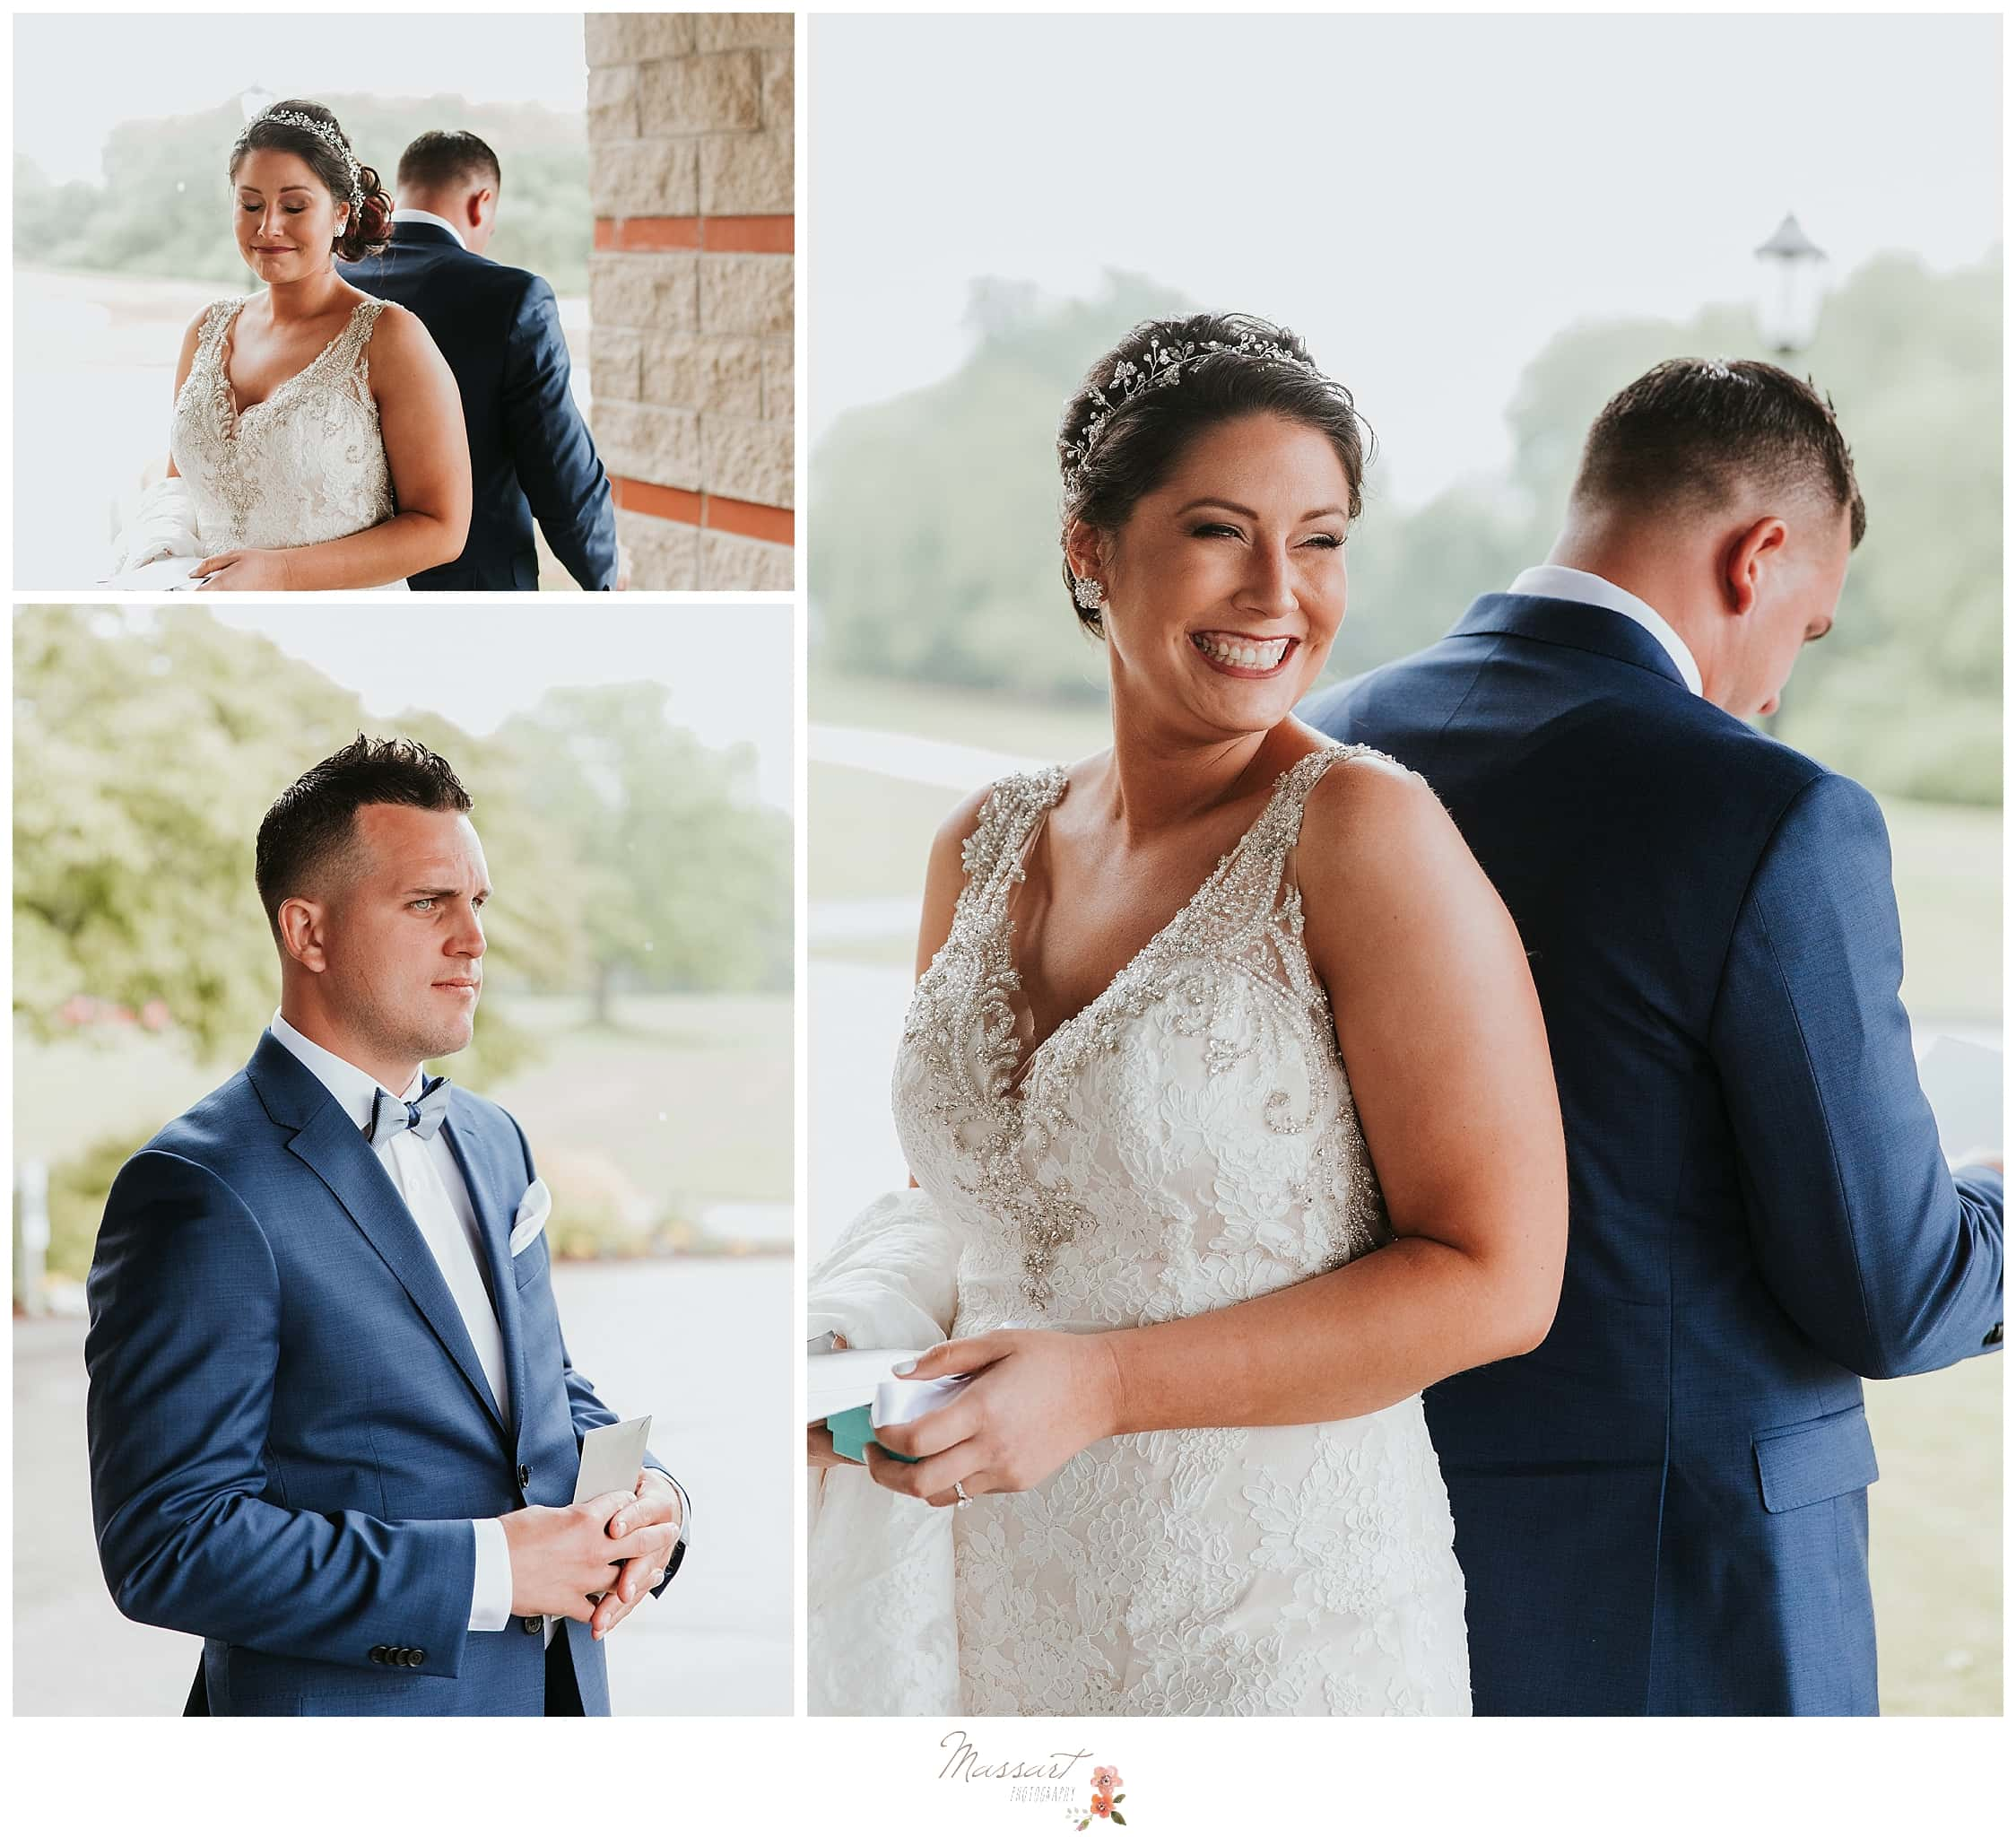 Bride and groom during first look at Harbor Lights wedding in RI photographed by Massart Photography, CT and MA wedding photographers.